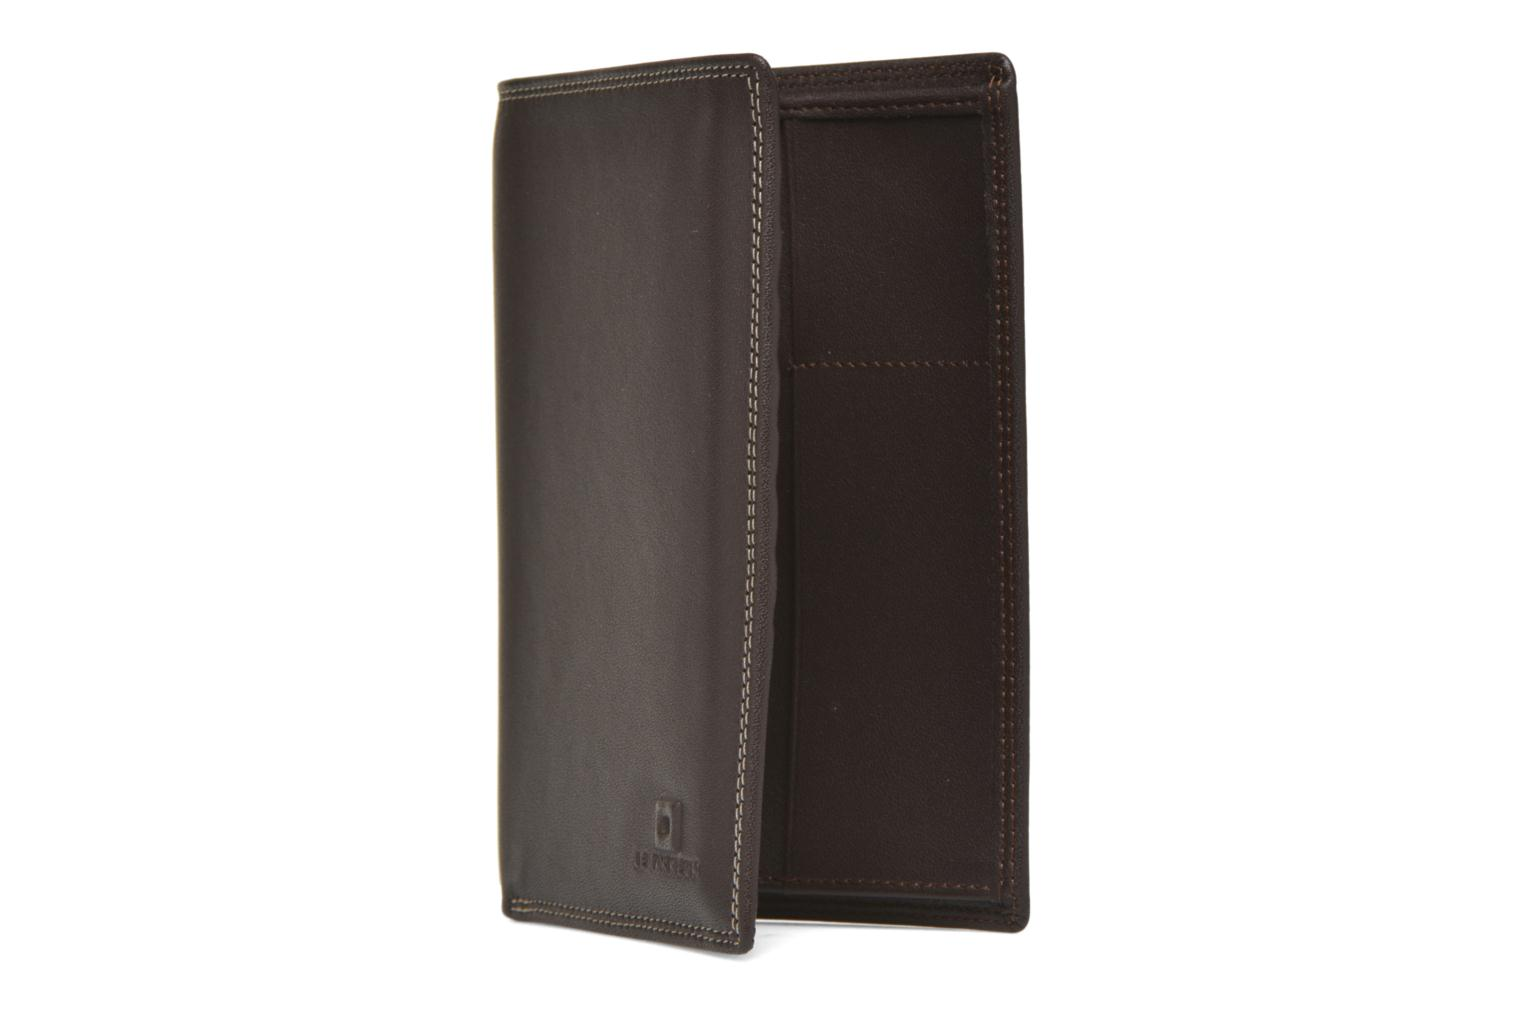 TOURAINE Portefeuille poche zip 2 volets marron